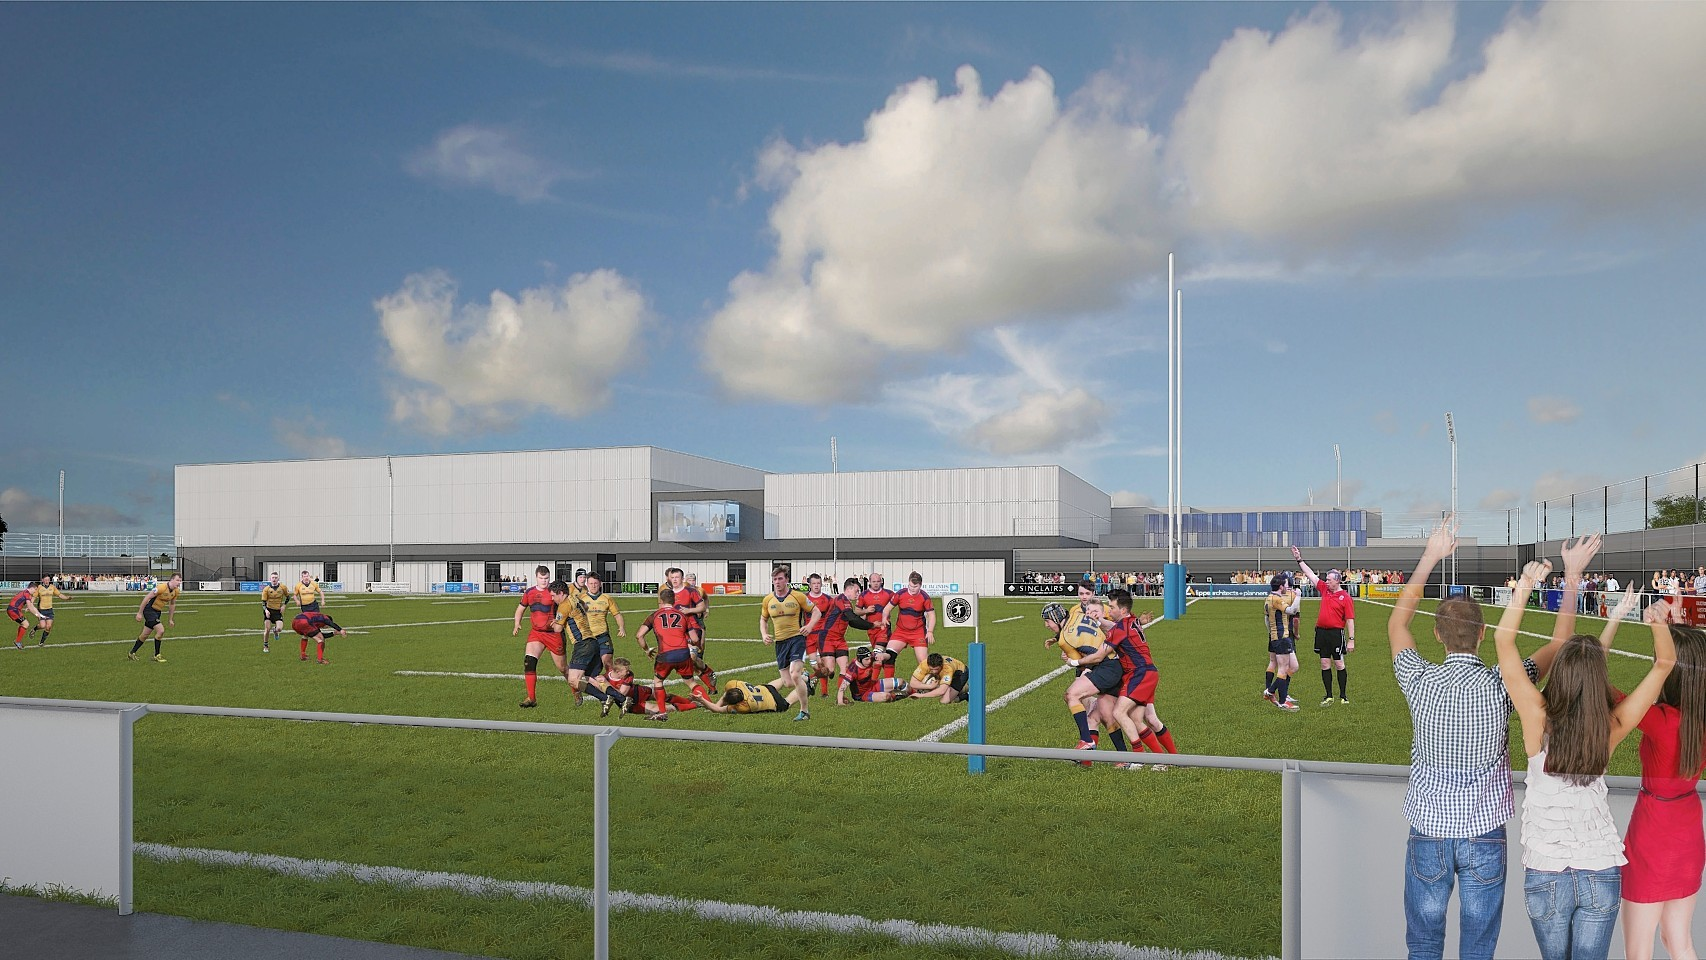 A rugby pitch at the proposed Garioch Sports and Community Centre